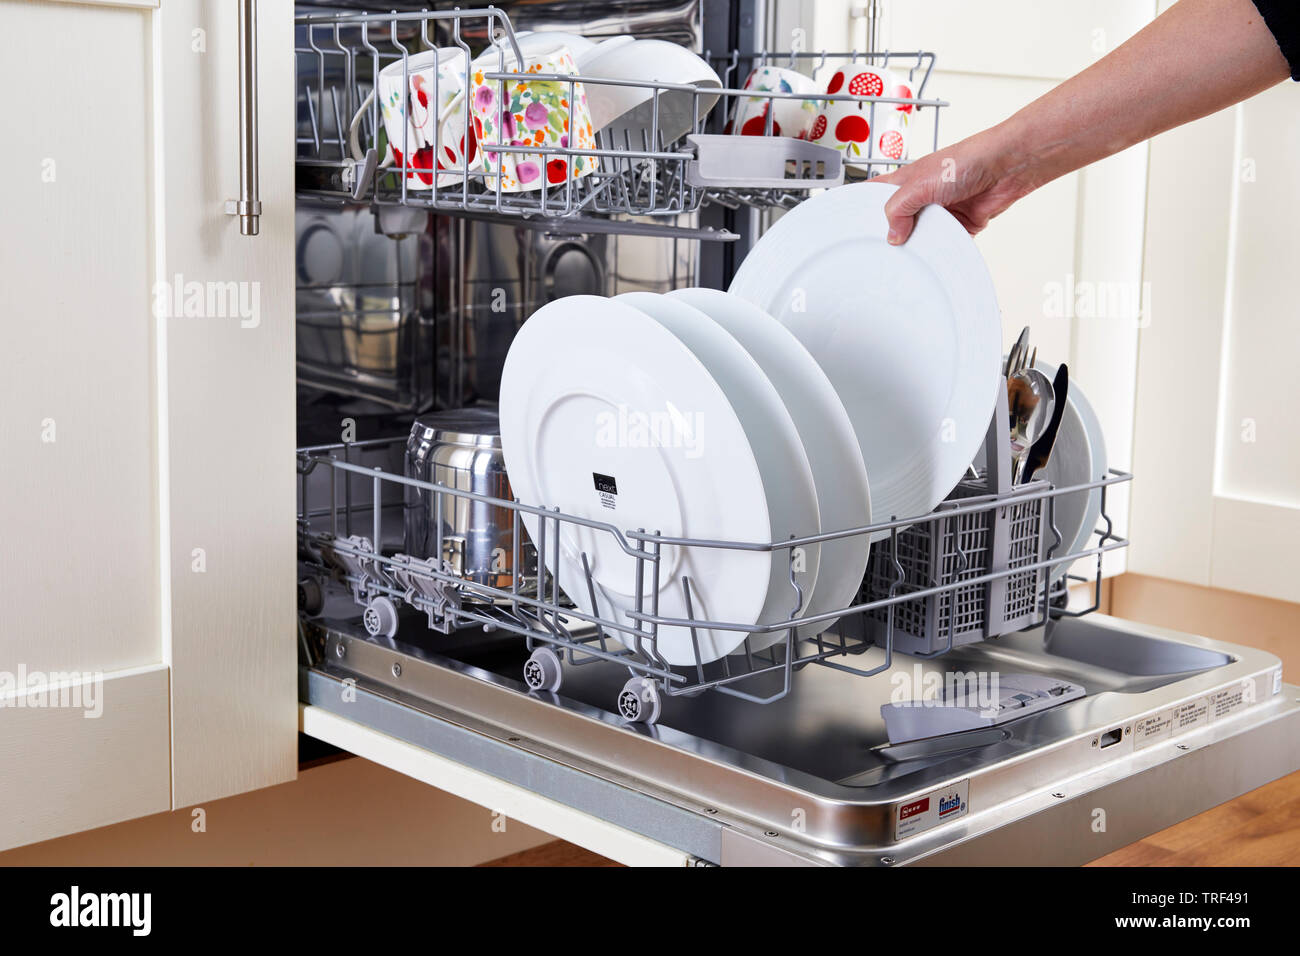 Woman unloading clean dishwasher - Stock Image